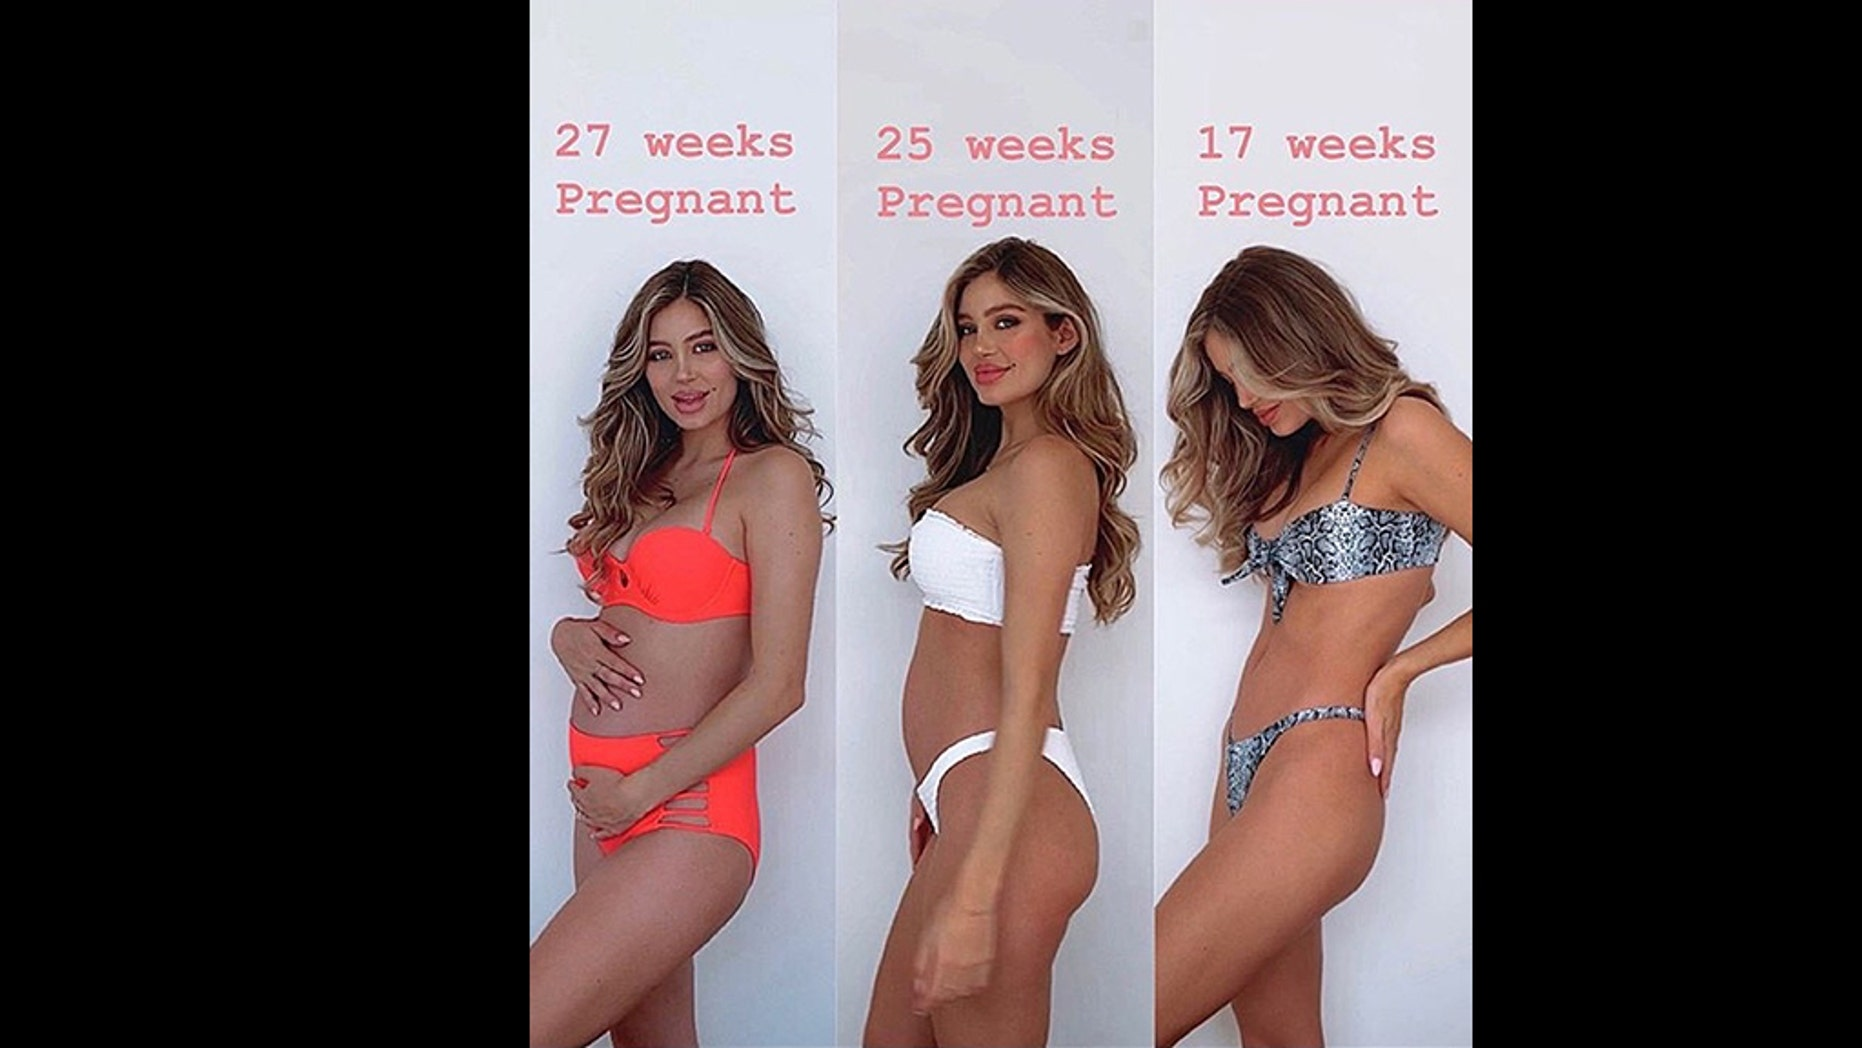 Pregnant model Belle Lucia is speaking out against the industry.